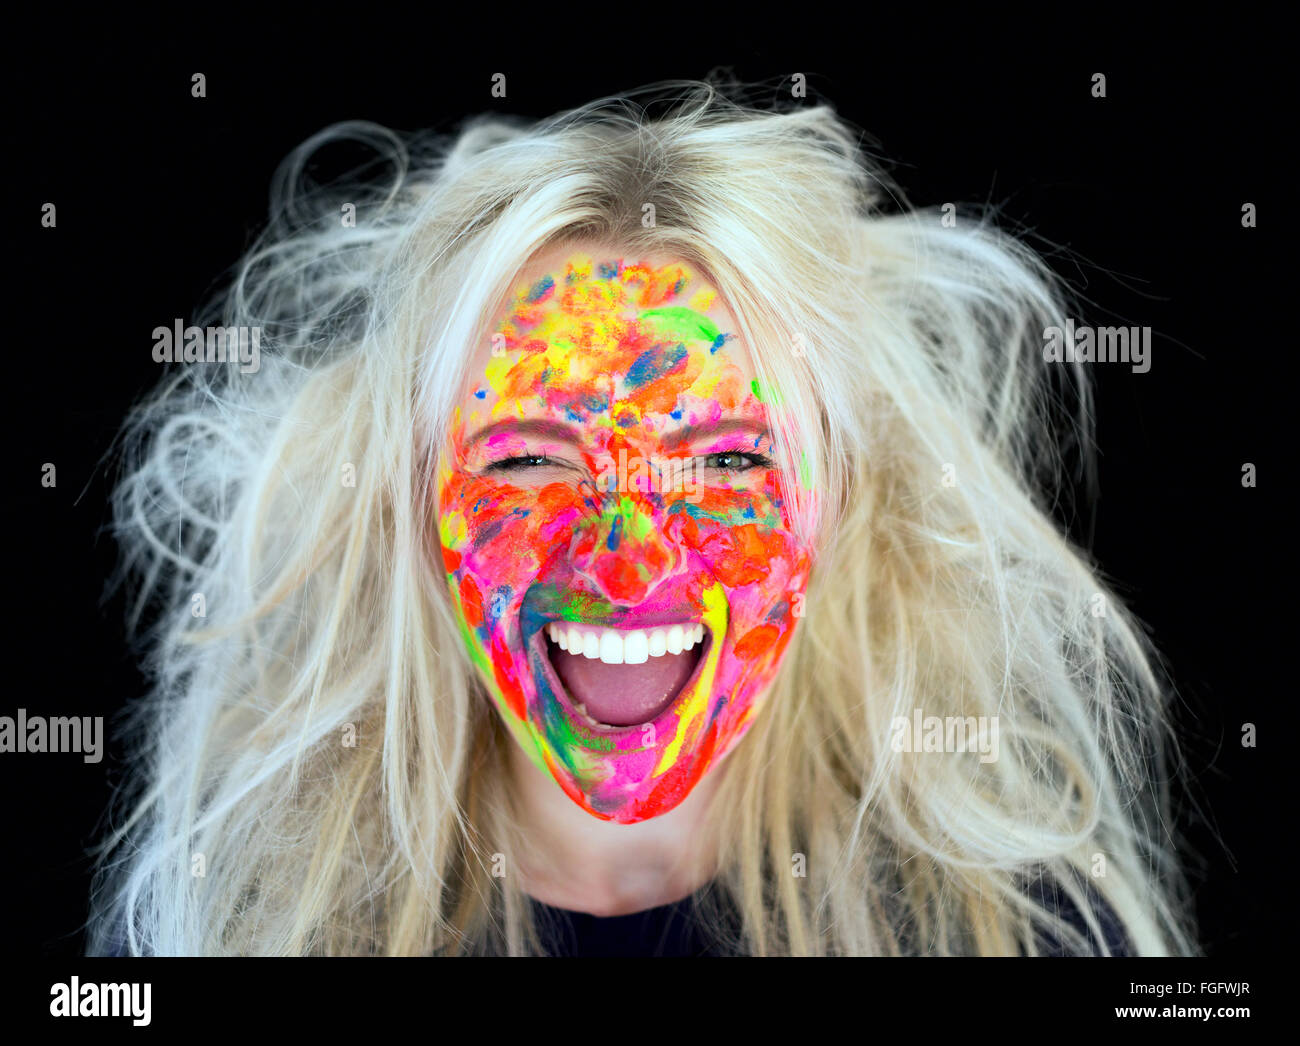 Woman with messy blonde hair with face covered in multi coloured paint laughing Stock Photo